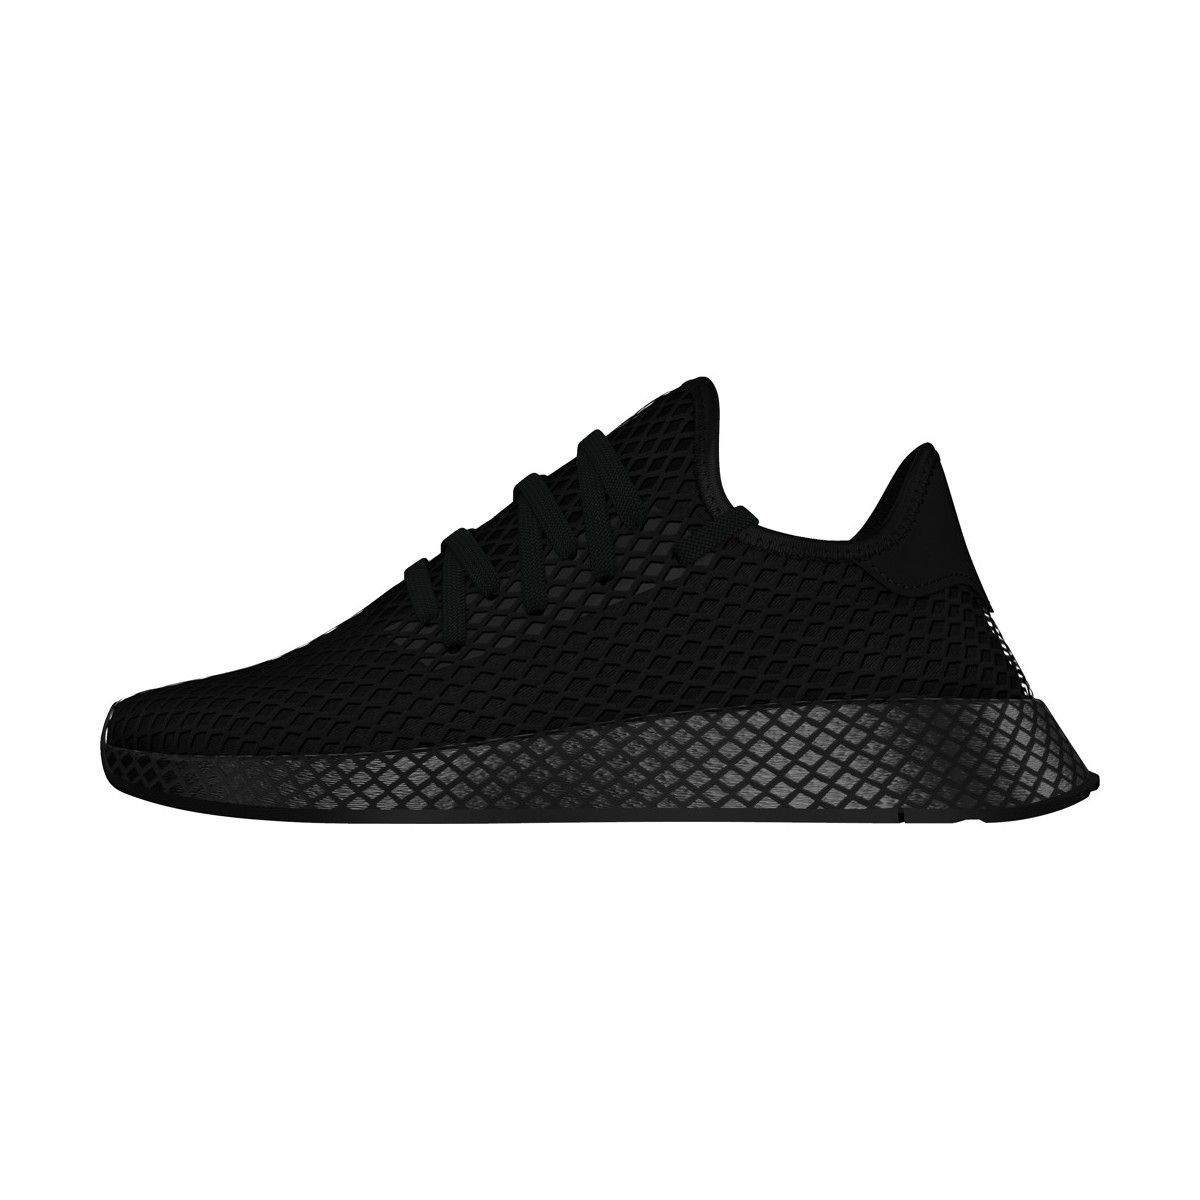 Basket Adidas Originals Deerupt Runner - B41768 - Taille ...